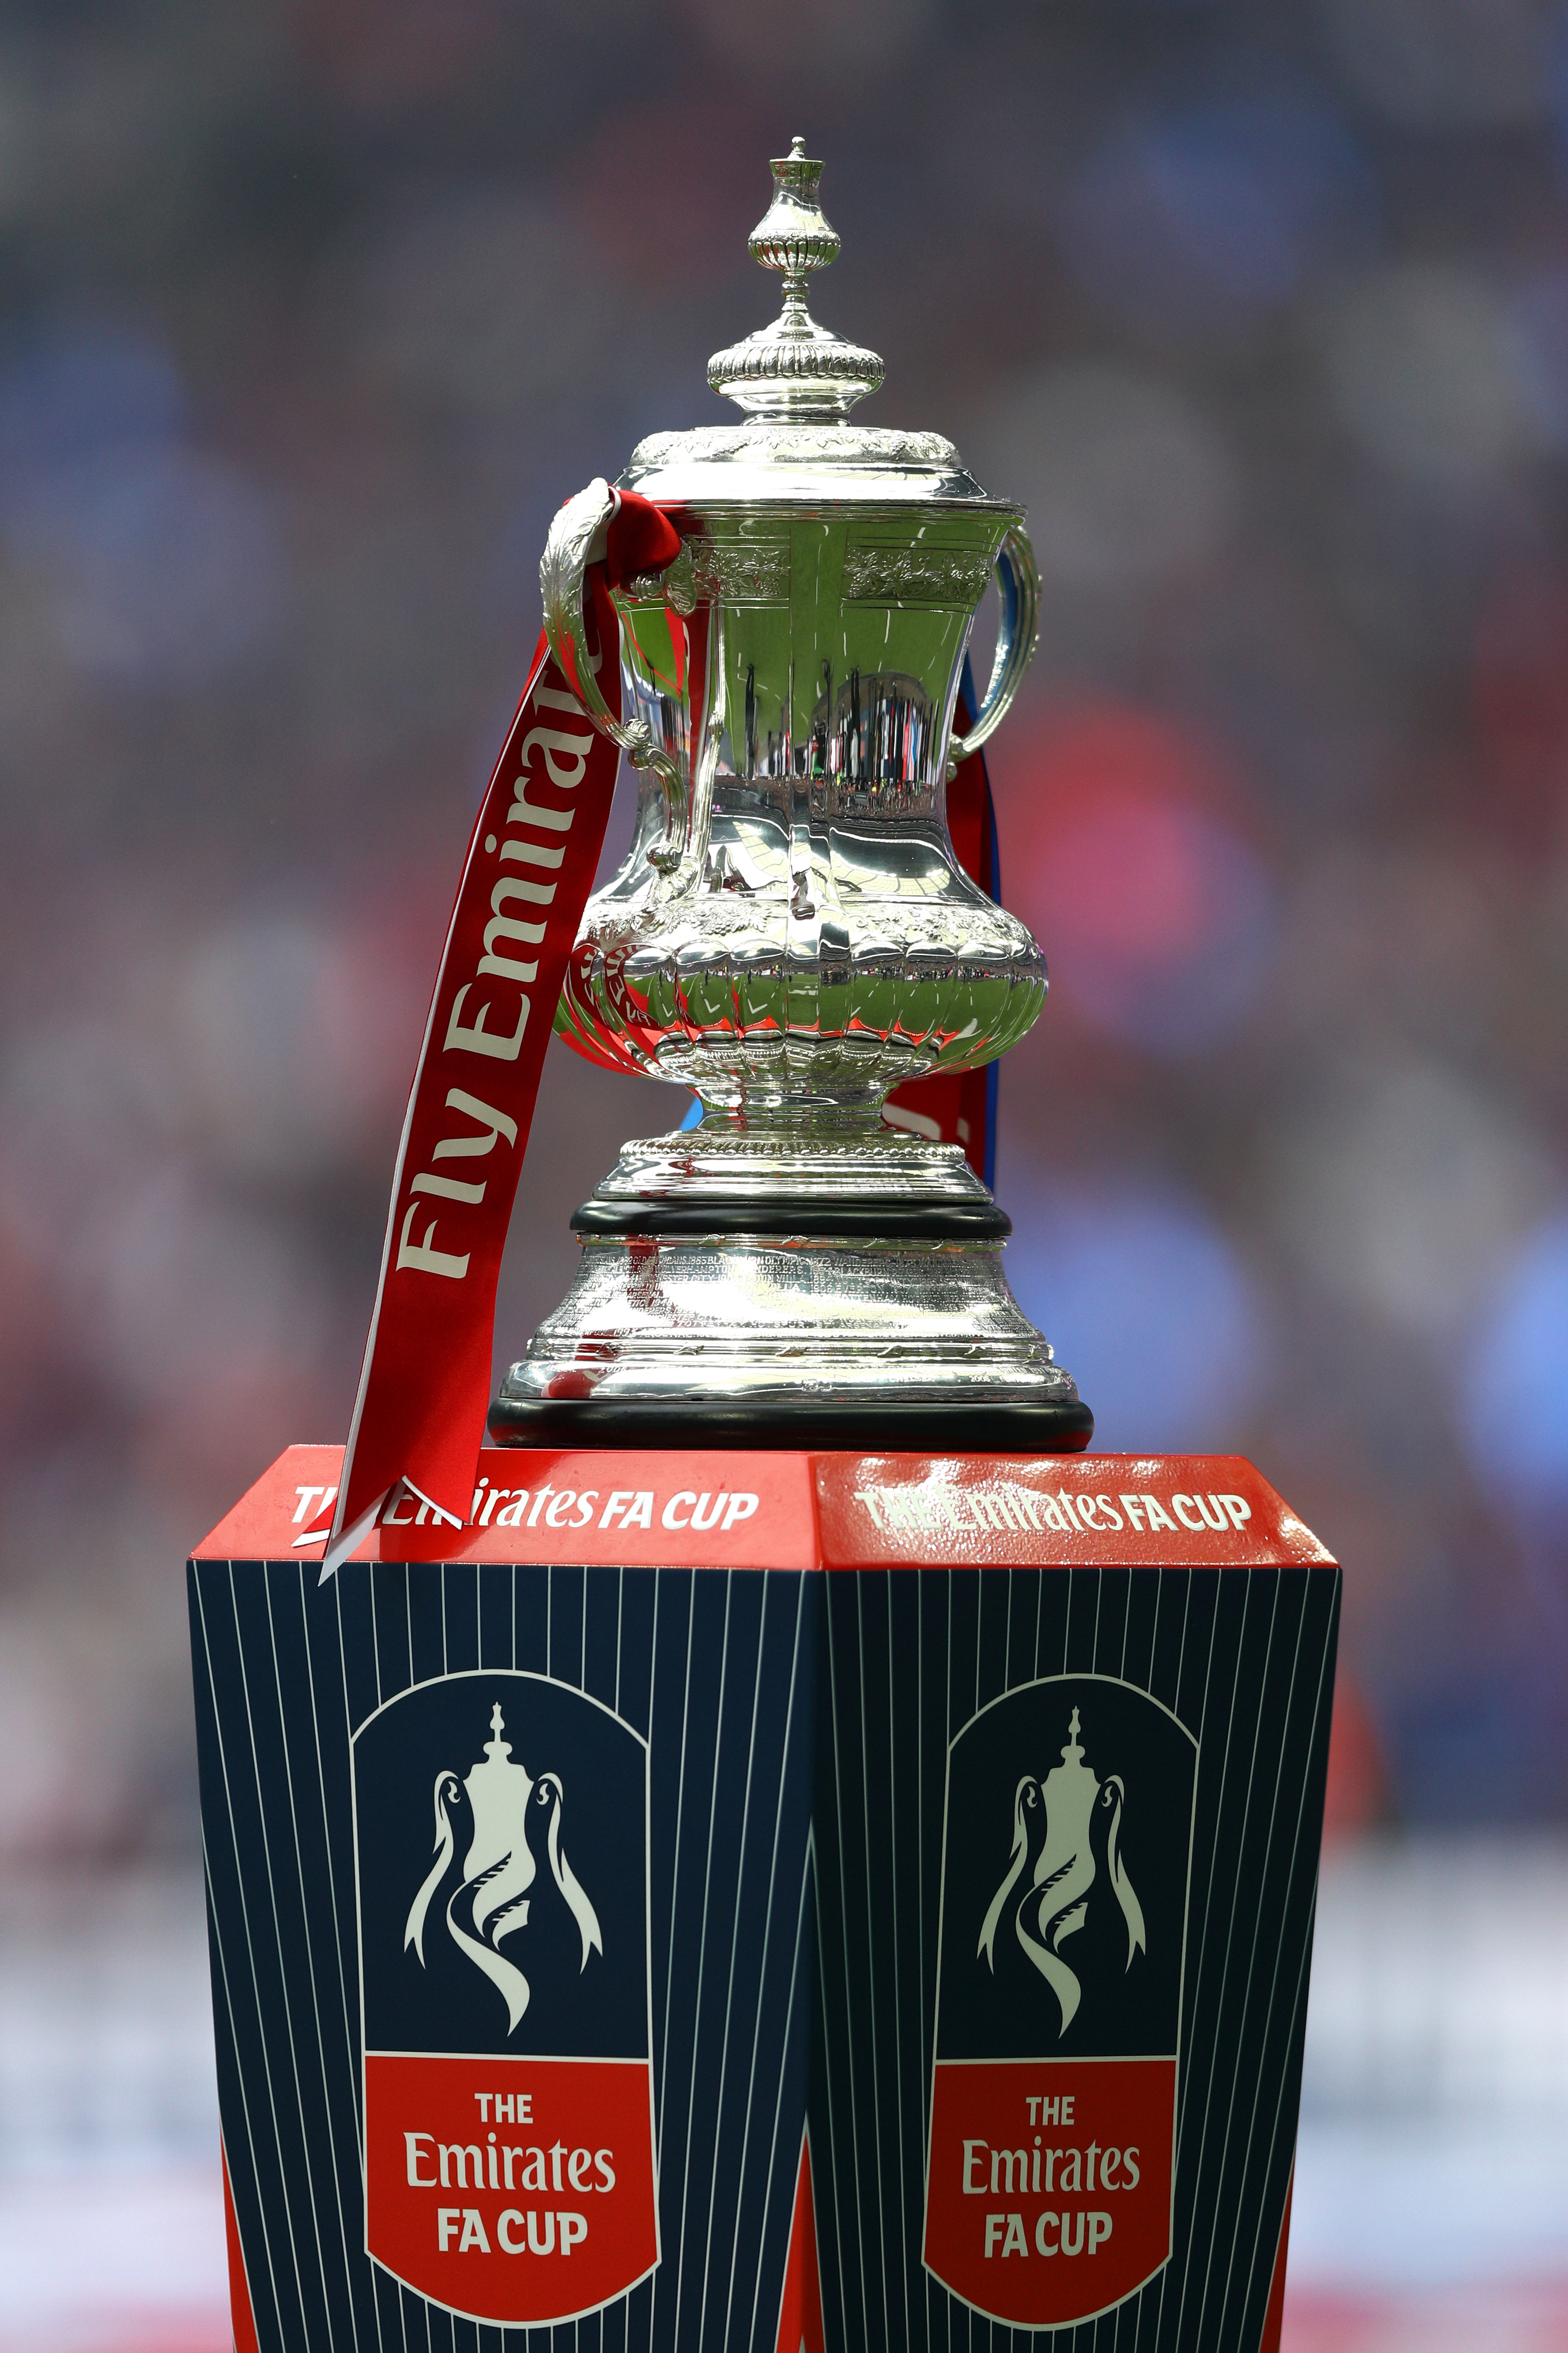 533184684-manchester-united-v-crystal-palace-the-emirates-fa-cup-final